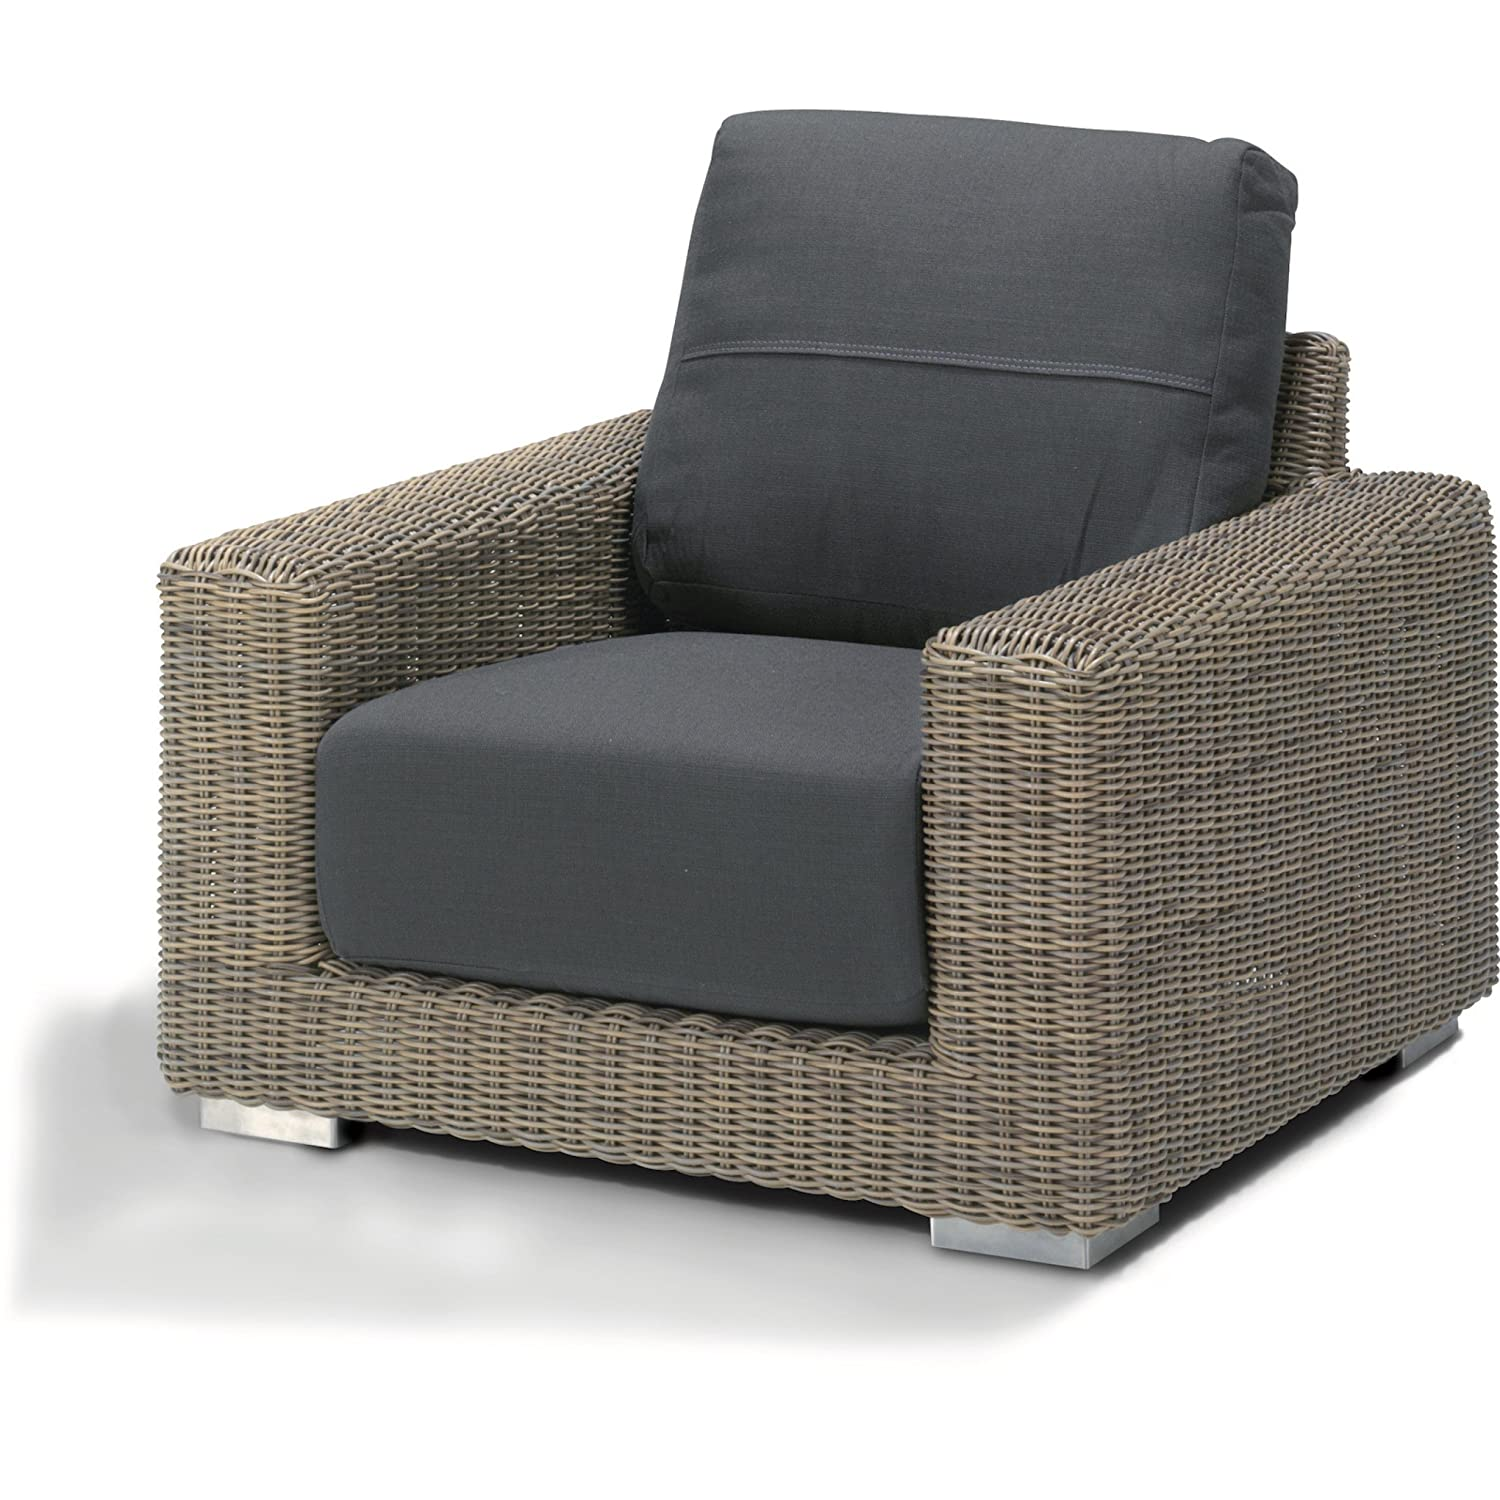 4Seasons Outdoor Kingston living Sessel Loungesessel Polyrattan pure ...